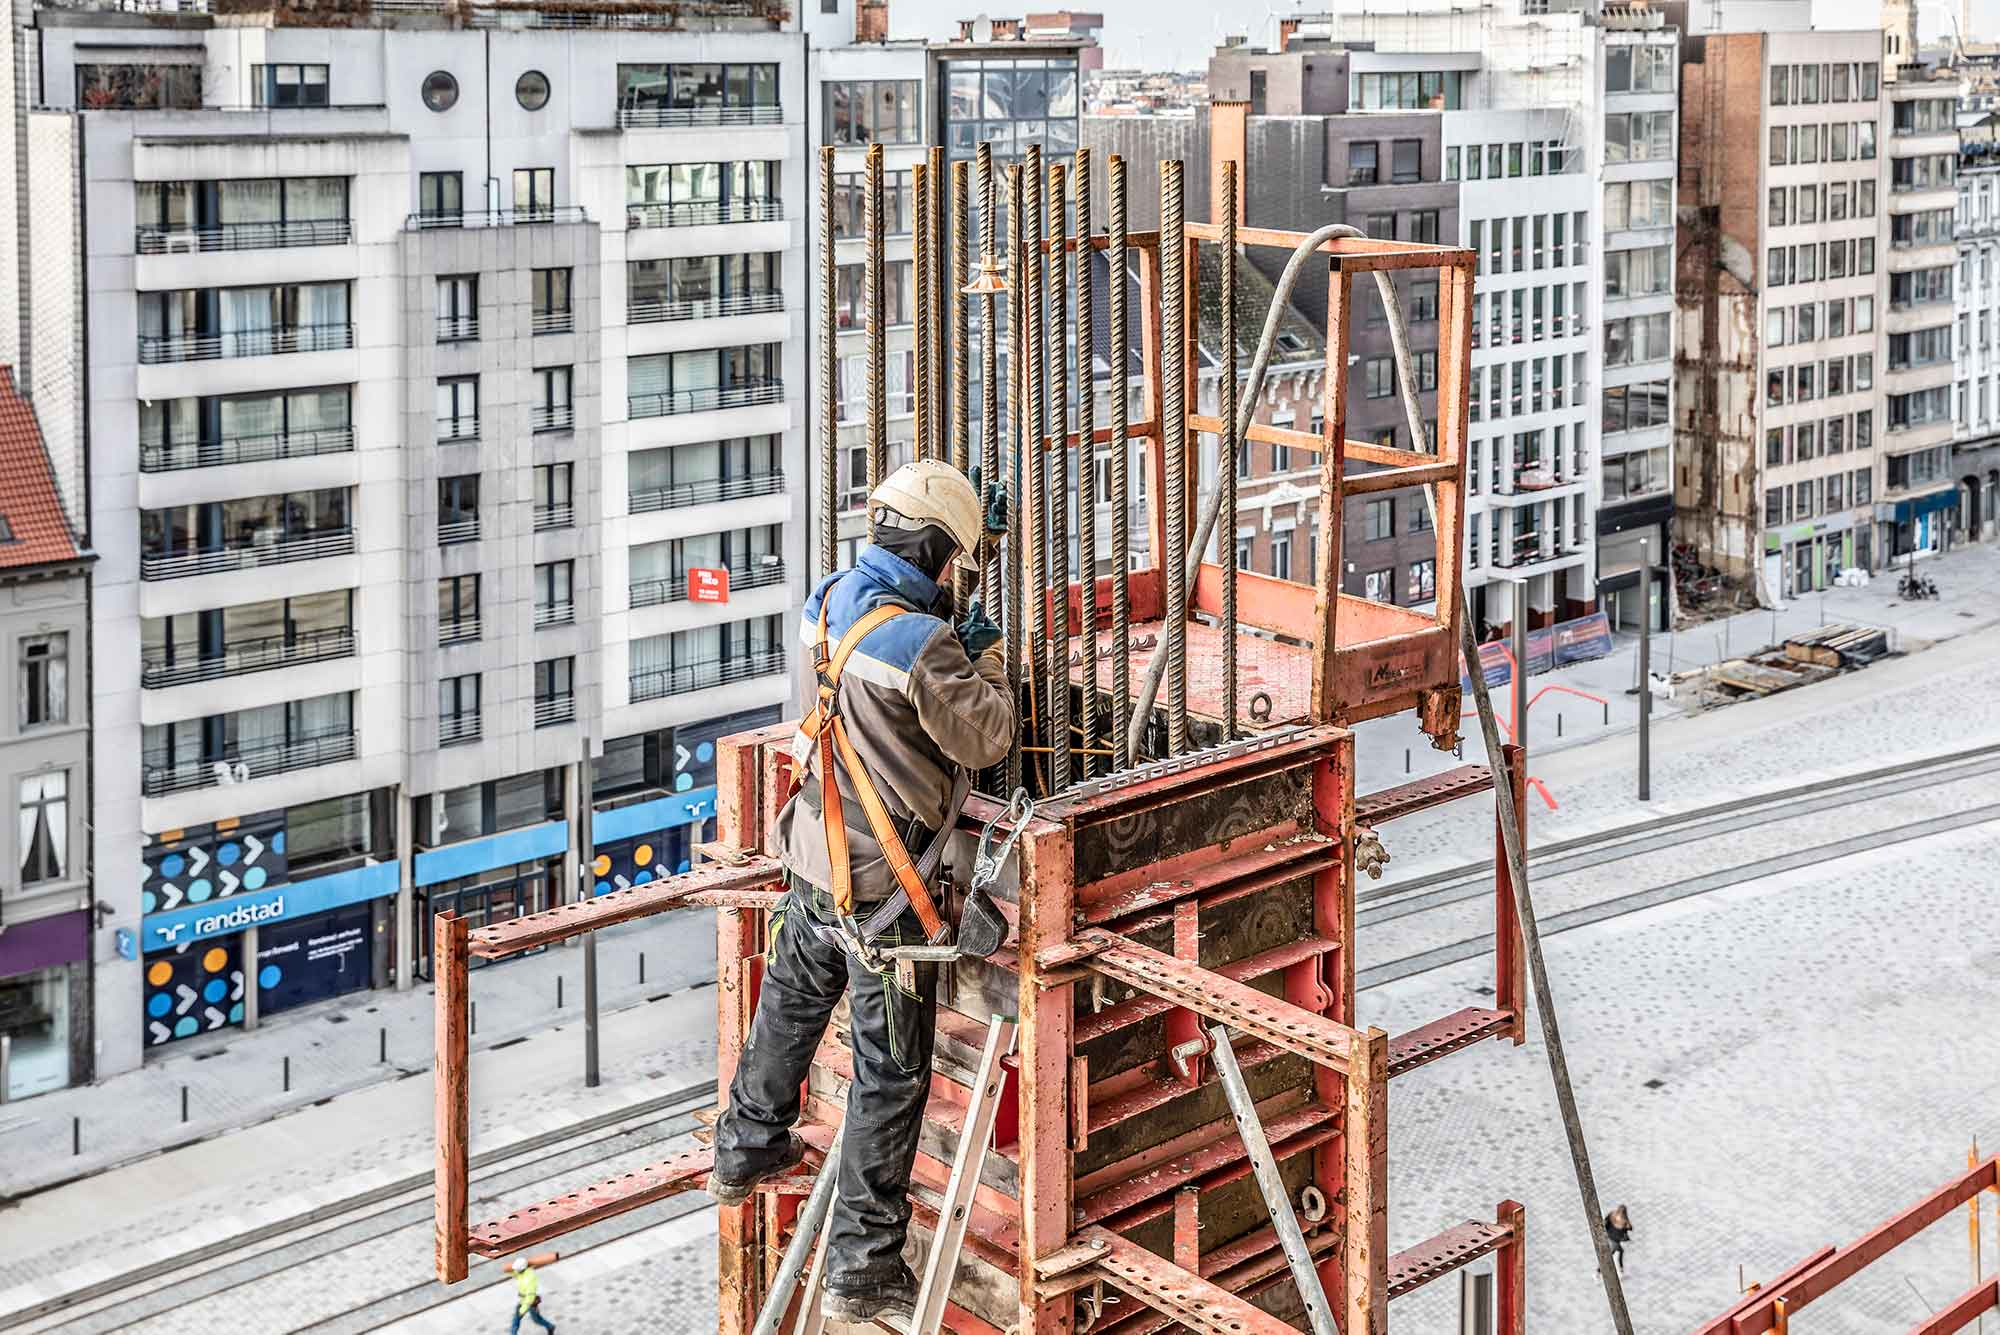 Construction_photography_pascal_vandecasteele21.jpg